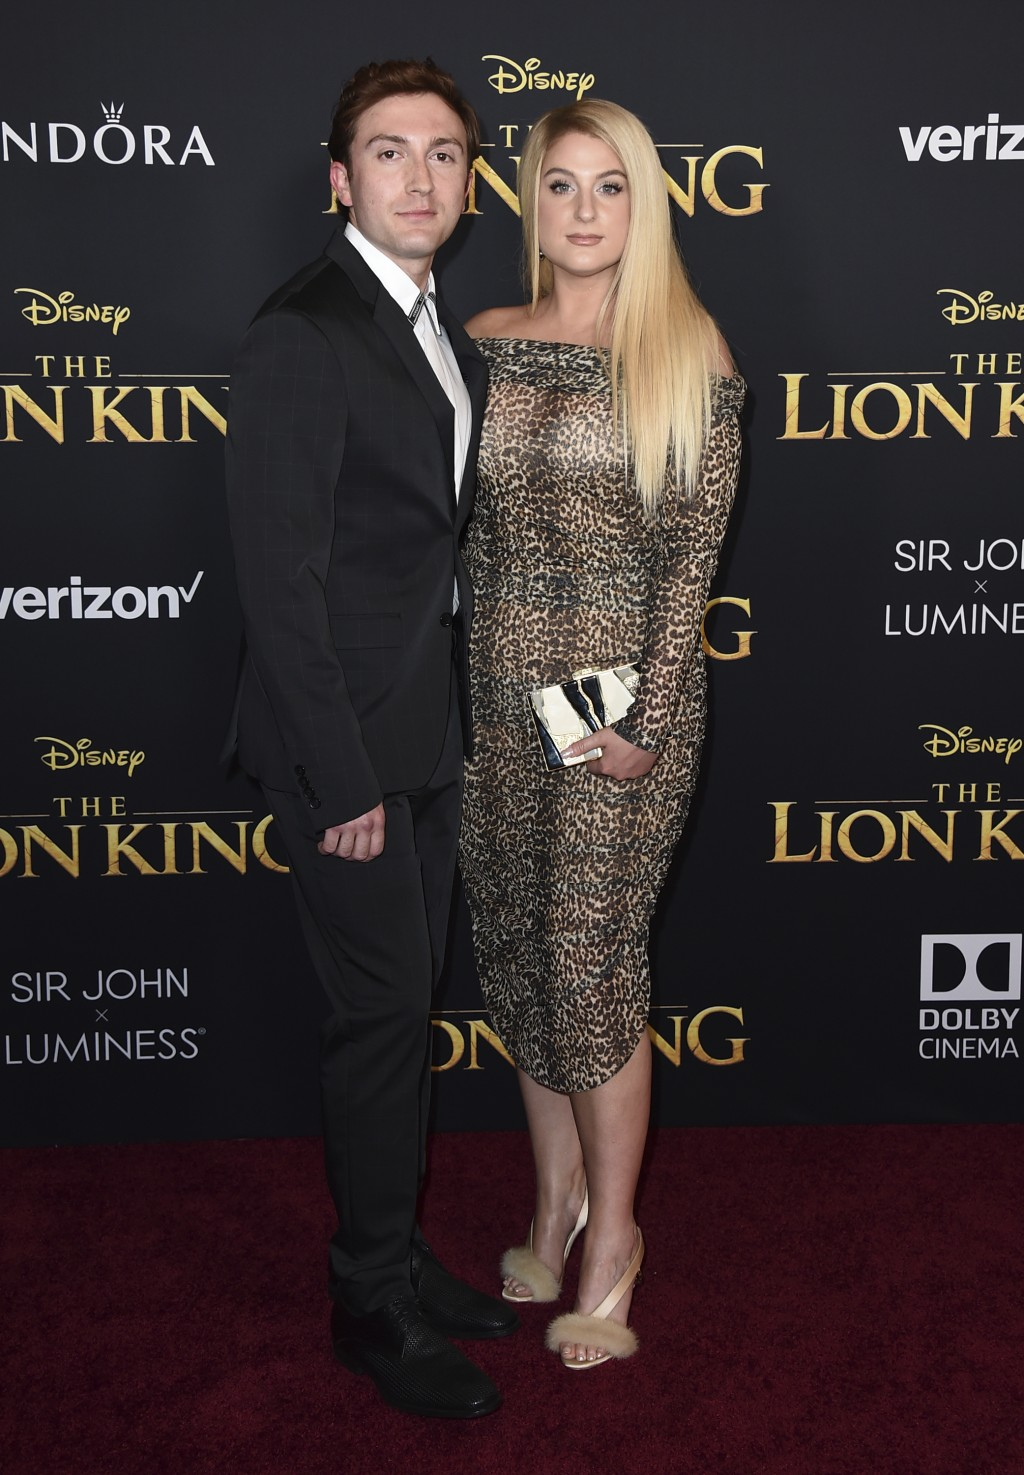 """Meghan Trainor, right, and Daryl Sabara arrive at the world premiere of """"The Lion King"""" on Tuesday, July 9, 2019, at the Dolby Theatre in Los Angeles."""